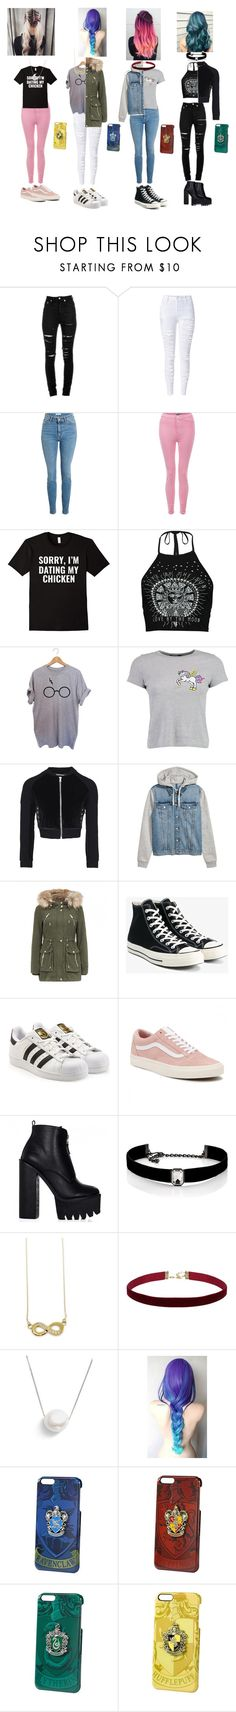 """""""Last years squad"""" by hannahscheepers ❤ liked on Polyvore featuring Yves Saint Laurent, WithChic, Boohoo, Converse, adidas, Vans, Kenneth Jay Lane and Chan Luu"""